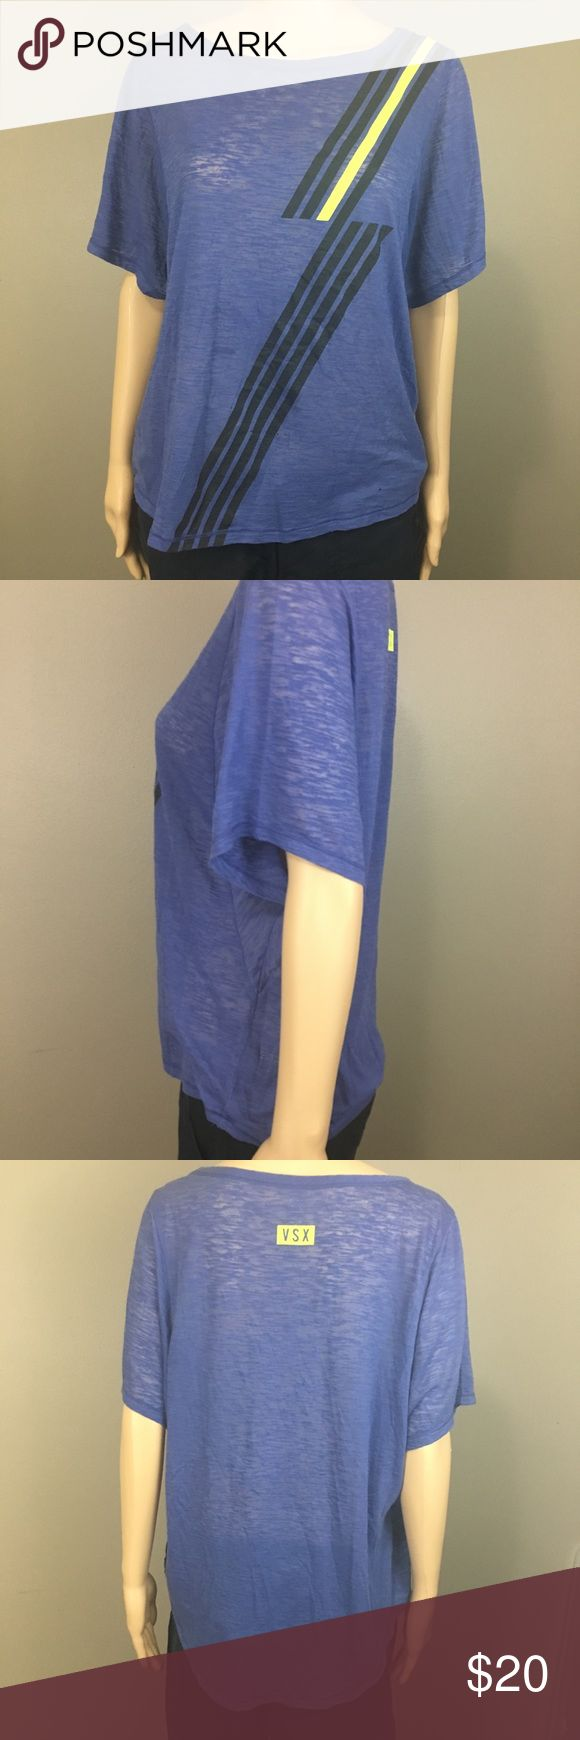 """VS sport medium exercise tee. VS sport medium exercise tee.  Approx flat lay measurements: 24-26"""" long, 18.5"""" waist & 9.5"""" dolman batwing sleeve. Periwinkle with black and neon yellow accent.  ** a few holes and a stain on the front as seen in pictures.  *** See photos for material content and care instructions.*** ✔️ I consider all offers. ✔️ I love bundles: I offer a bundle discount.  ✔️Smoke and pet free home.  🚫 no trades.  🚫 no paypal. Victoria's Secret Tops Tees - Short Sleeve"""